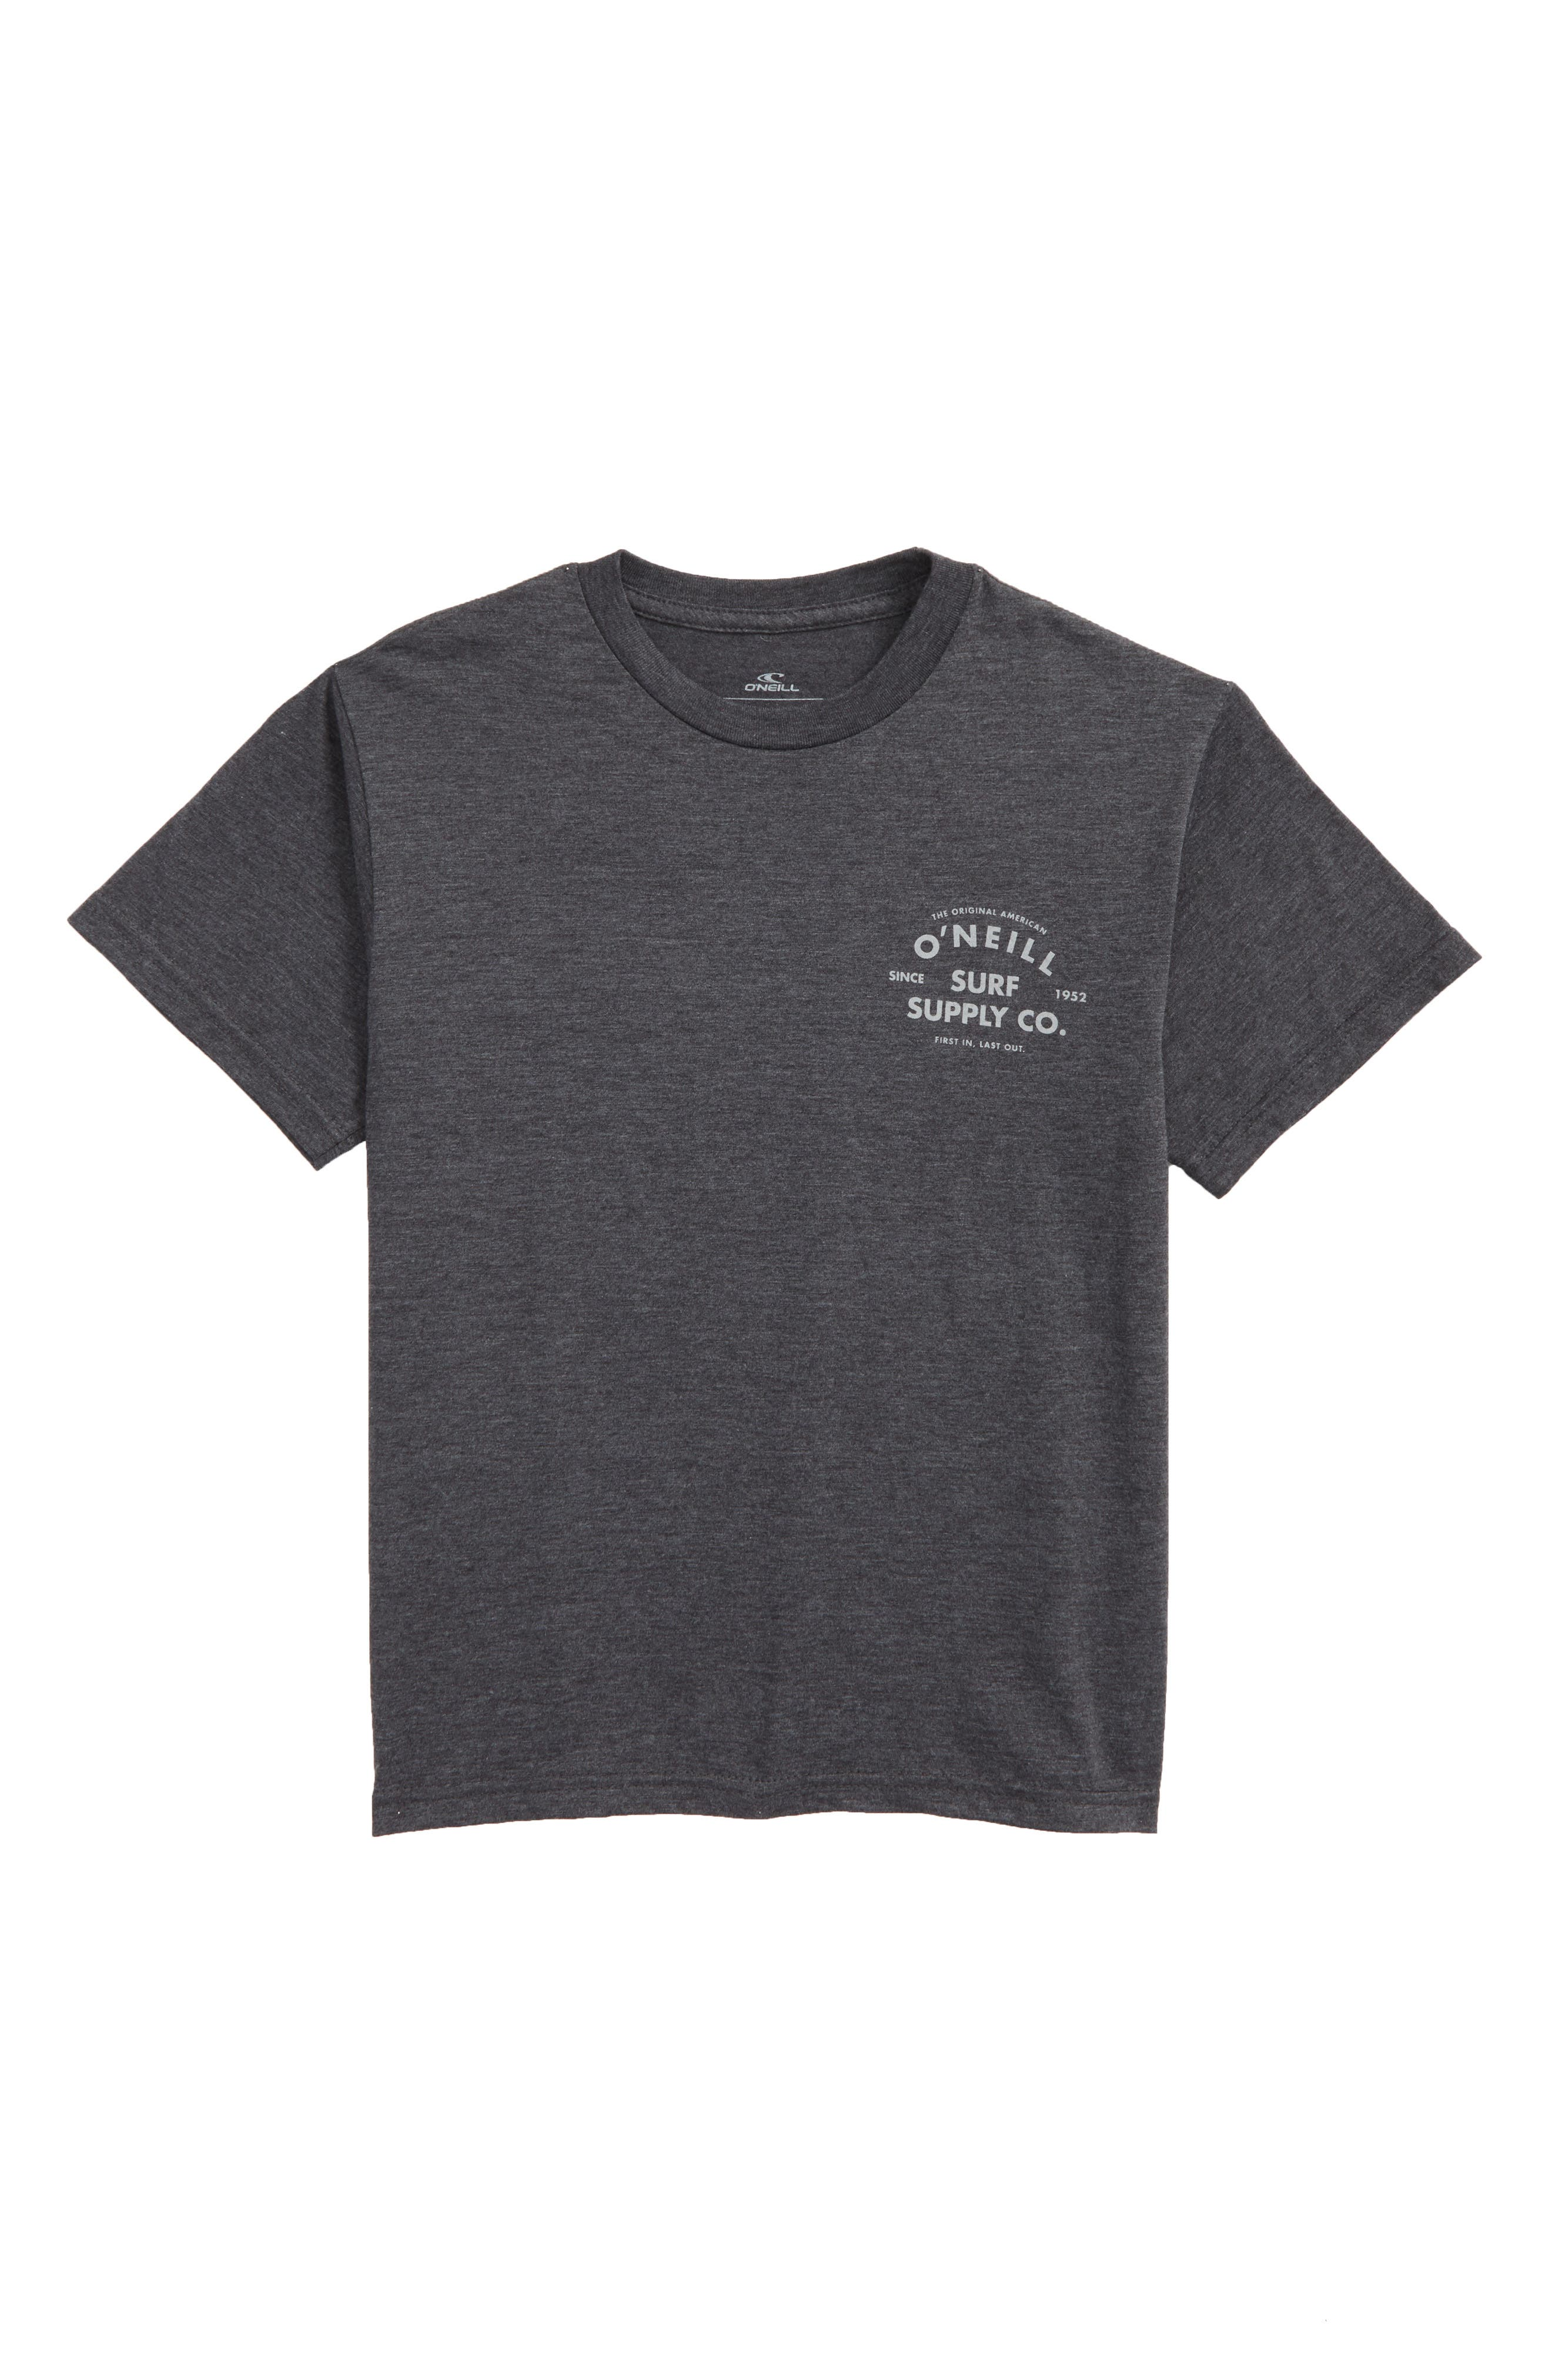 Gonner Graphic T-Shirt,                         Main,                         color, 001